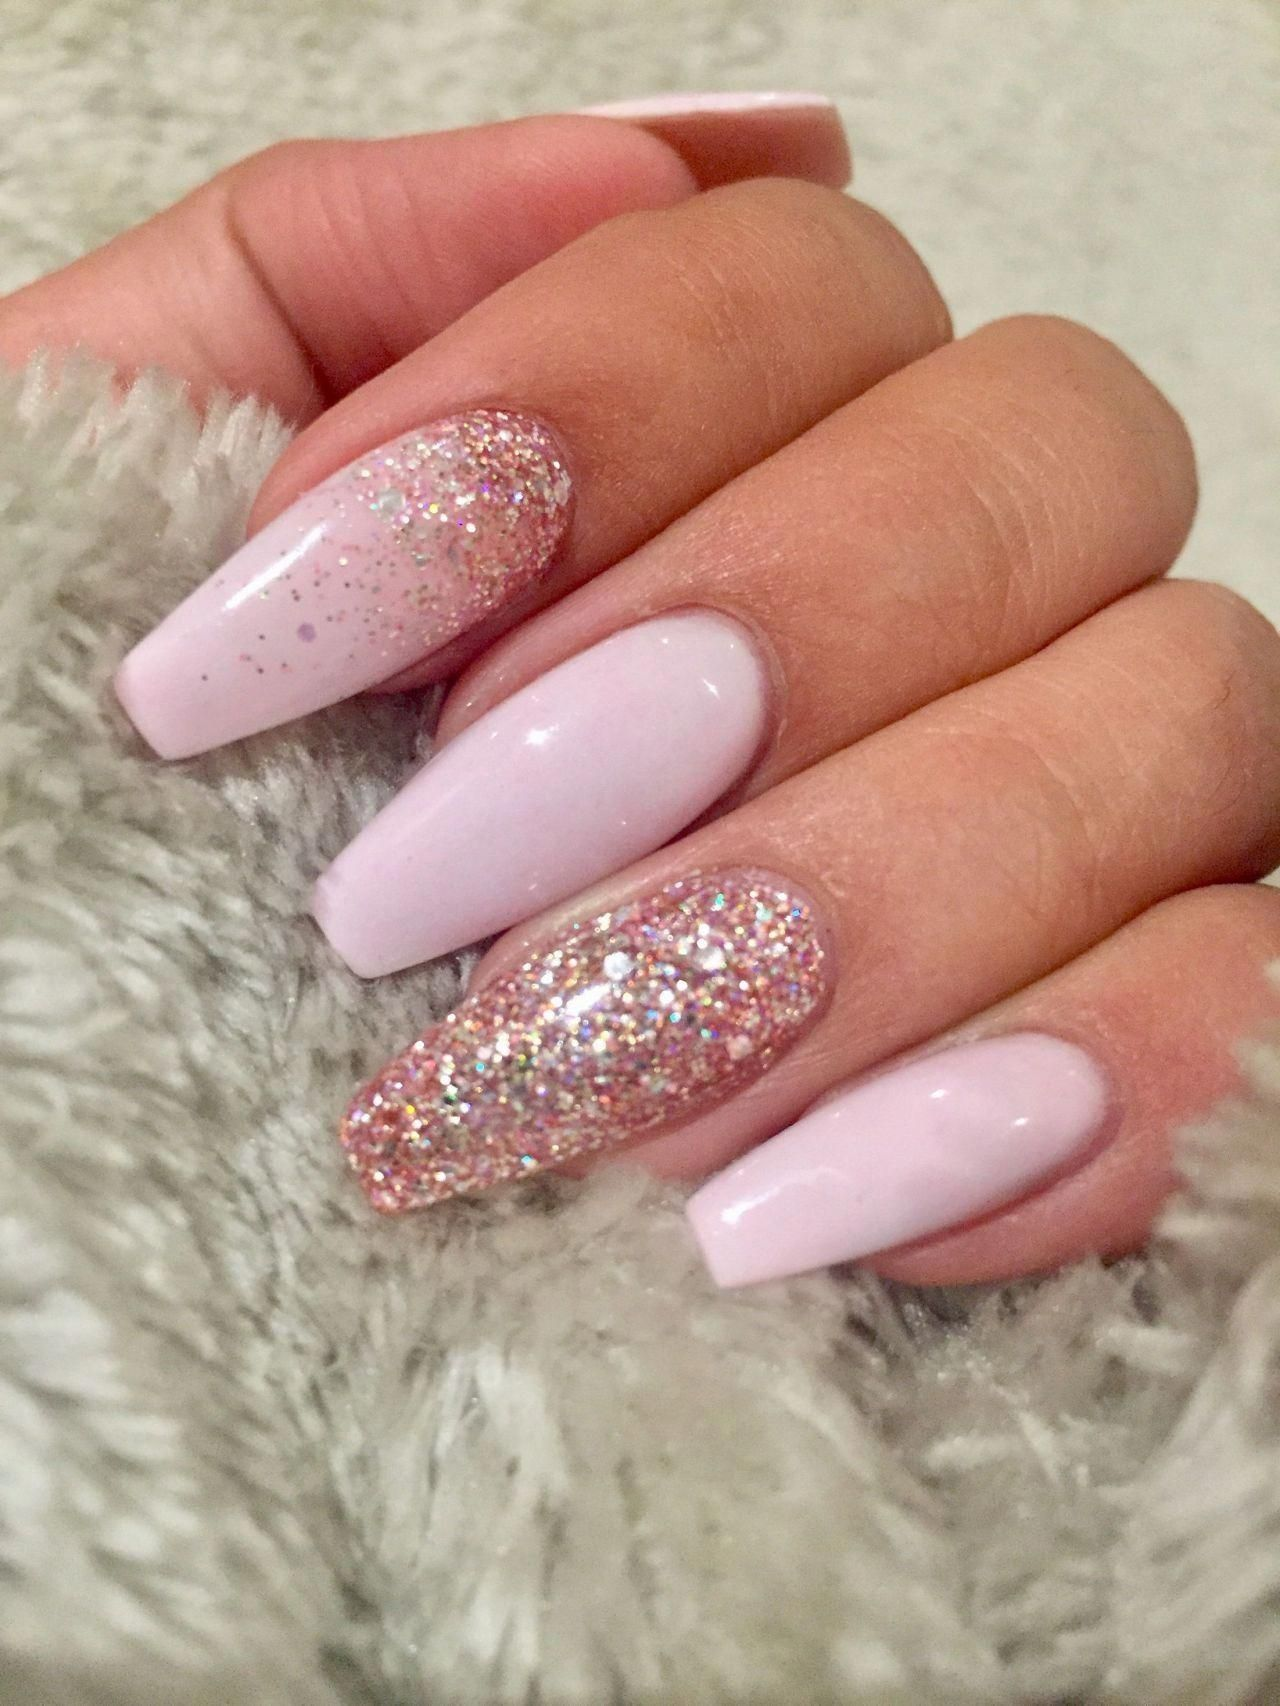 42 Coffin Acrylic Nail Ideas With Different Colors That You Ll Want To Copy Best Acrylic Nails Pink Acrylic Nails Light Pink Nails